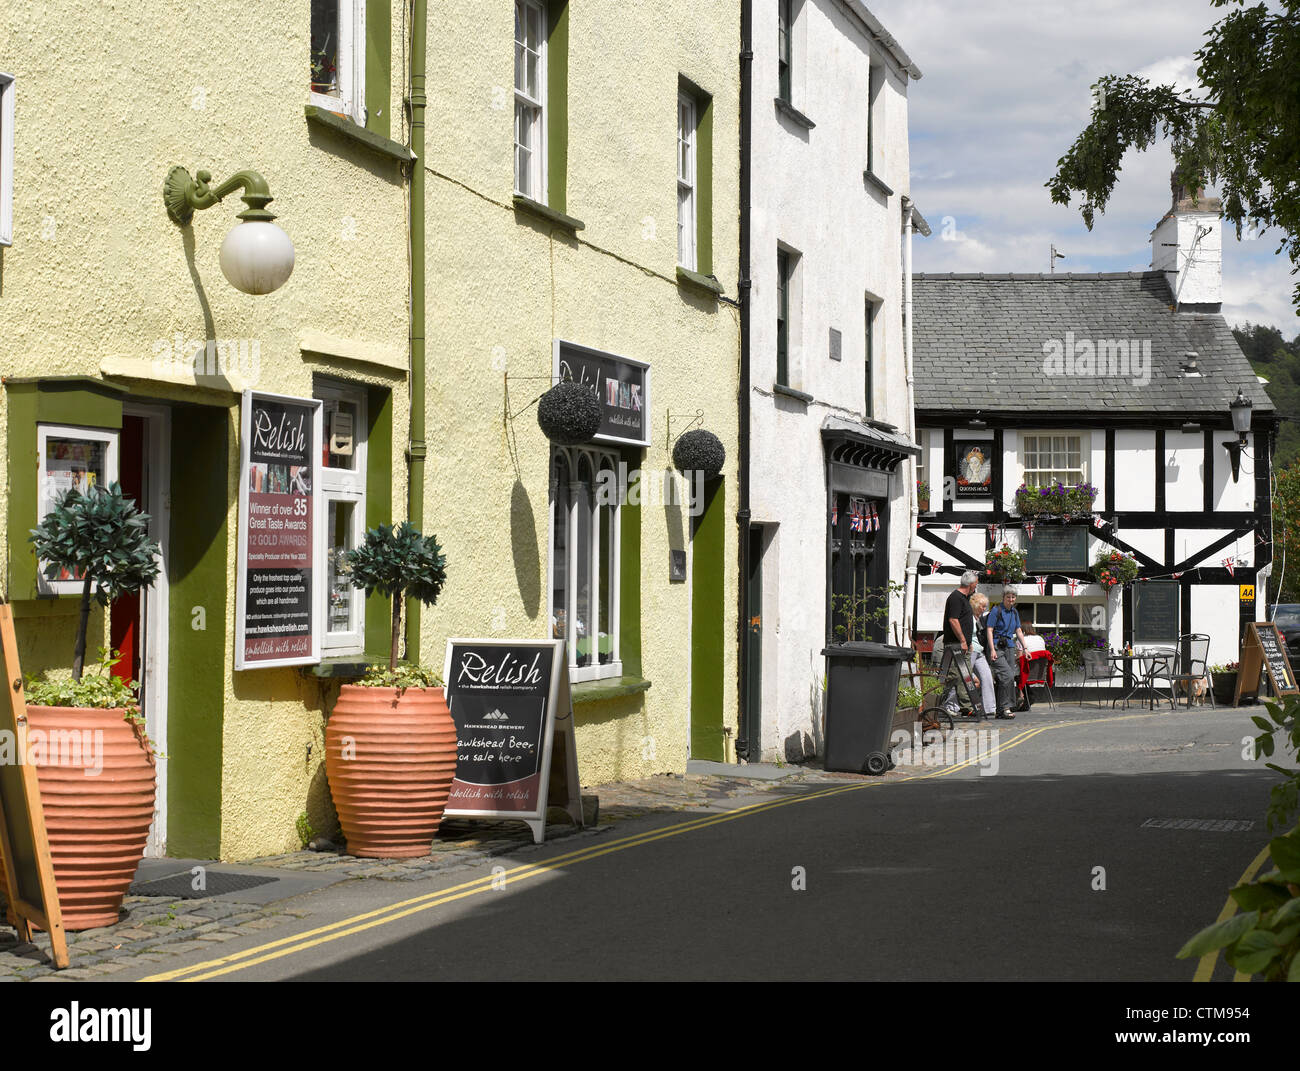 Looking down the narrow street to Queens Head Inn Hawkshead Cumbria England UK United Kingdom GB Great Britain - Stock Image